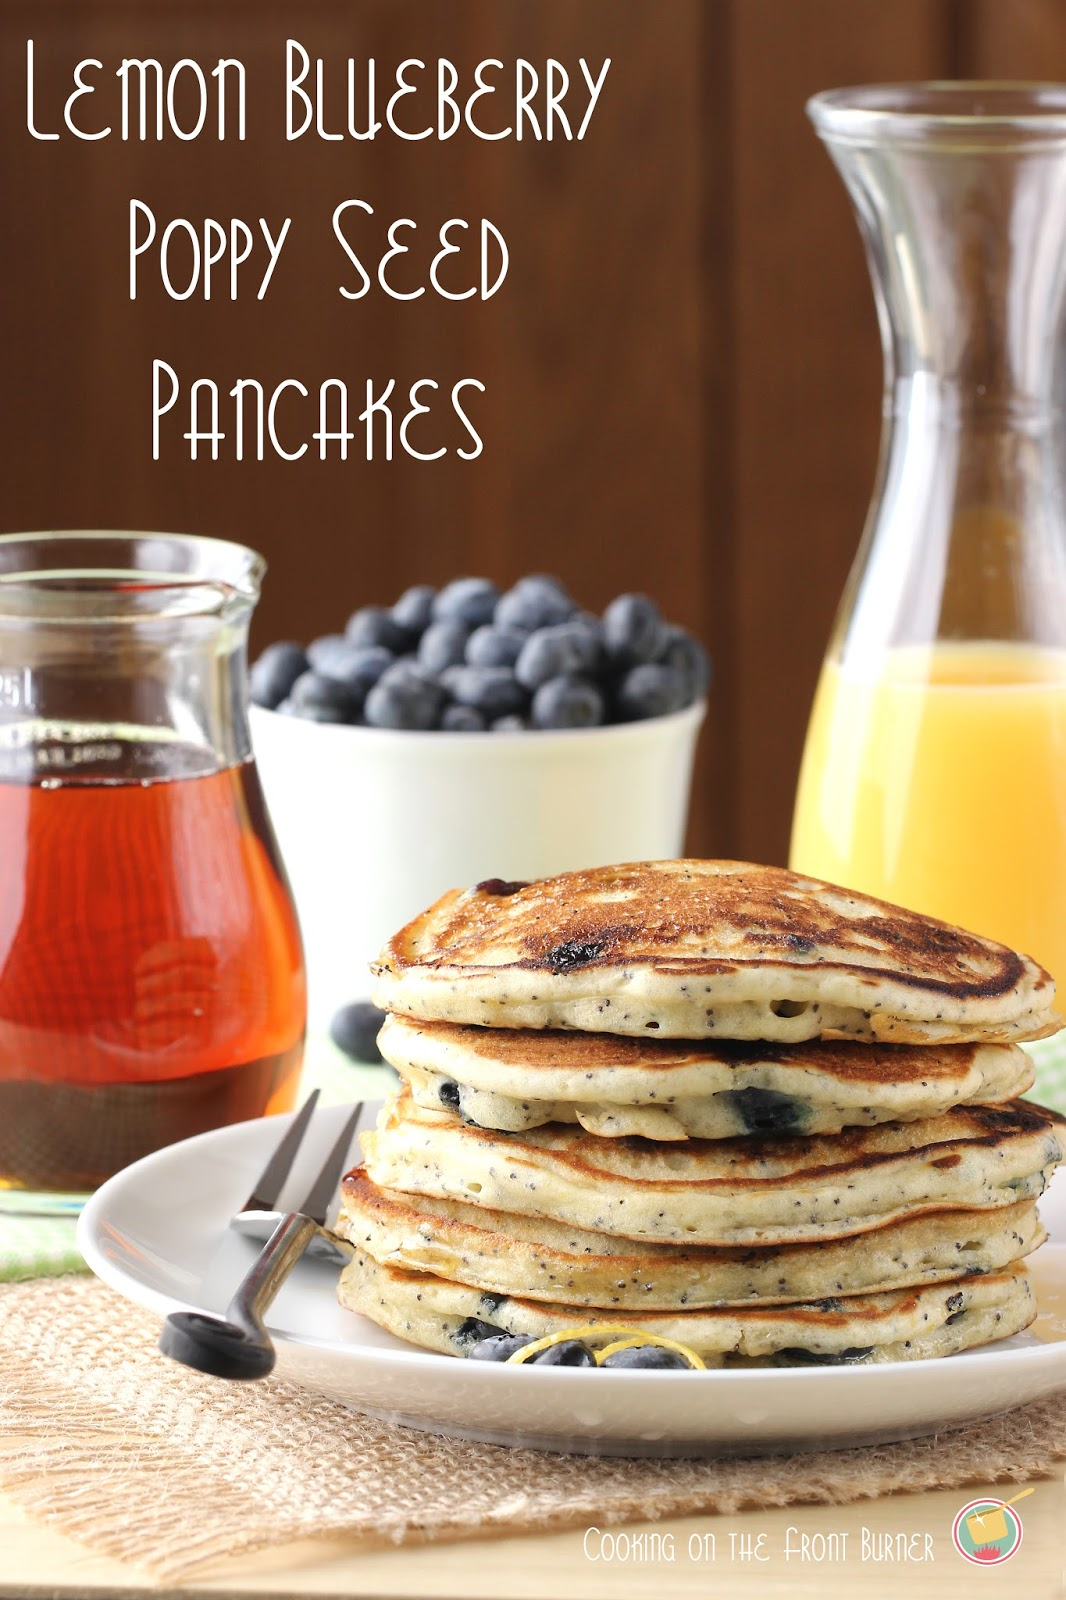 Lemon Blueberry Poppy Seed Pancakes - light and fluffy pancakes perfect for breakfast for brunch | Cooking on the Front Burner #pancakes #lemonblueberrypancakes